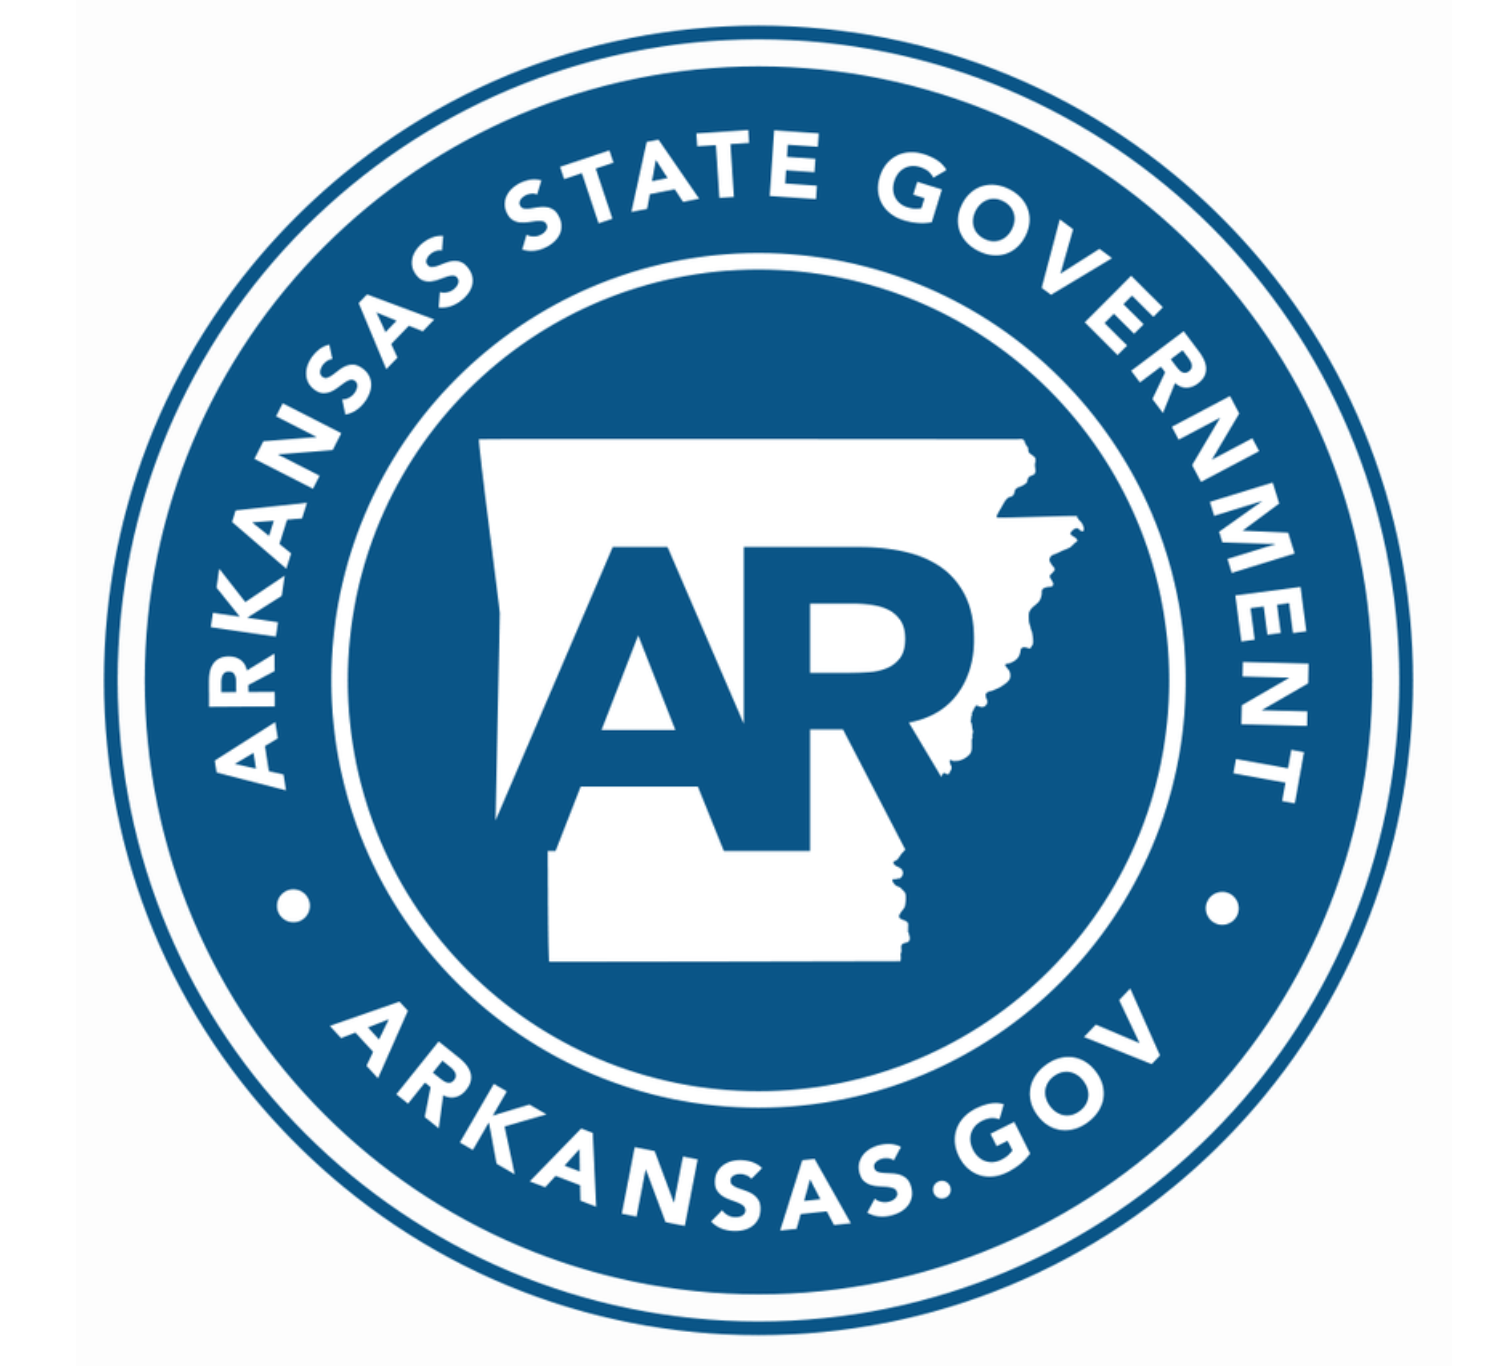 Arkansas - Personal Information Protection Act